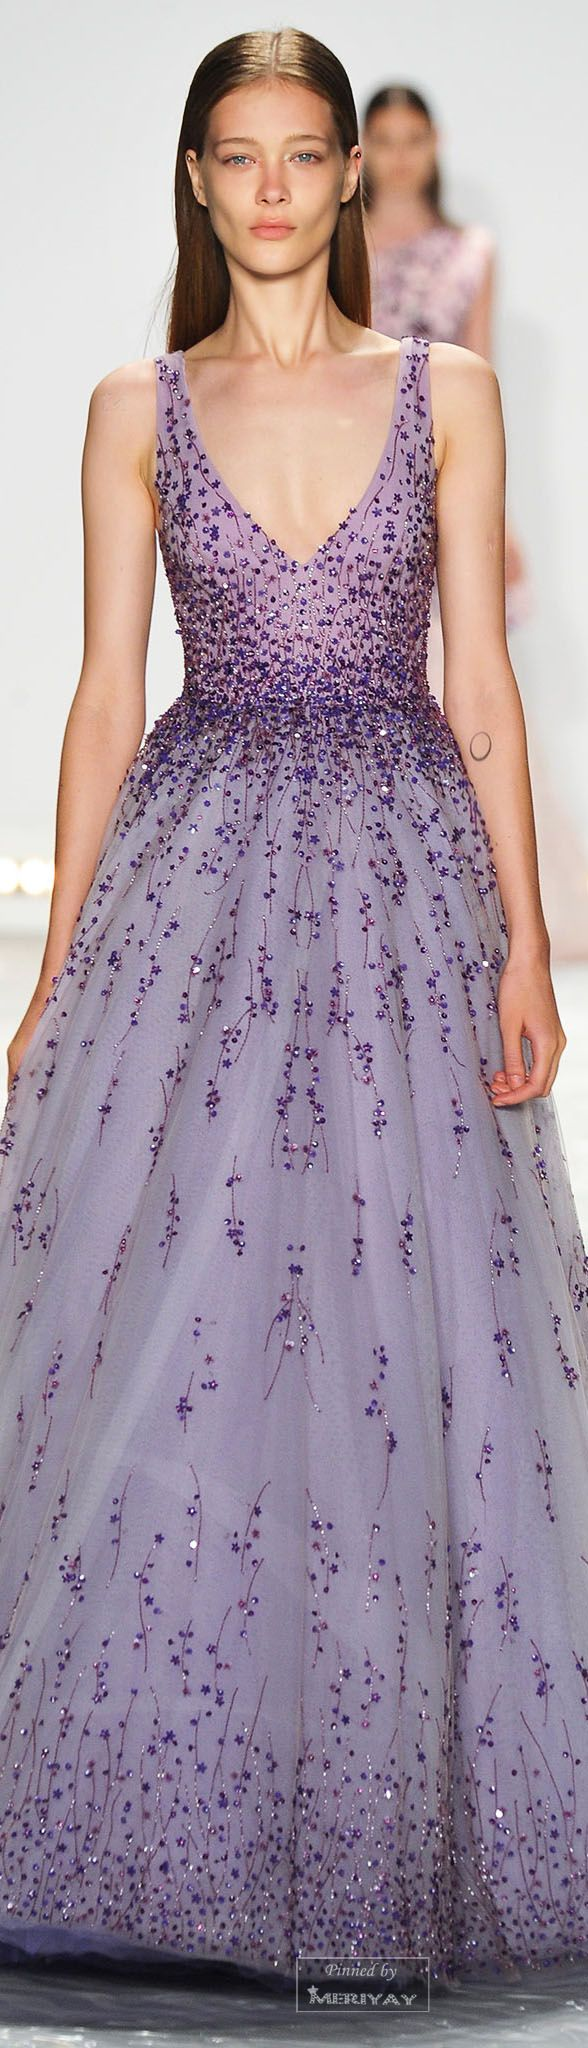 Monique Lhuillier.Spring 2015. | amethyst wedding | purple wedding dress | purple wedding | www.endorajewellery.etsy.com